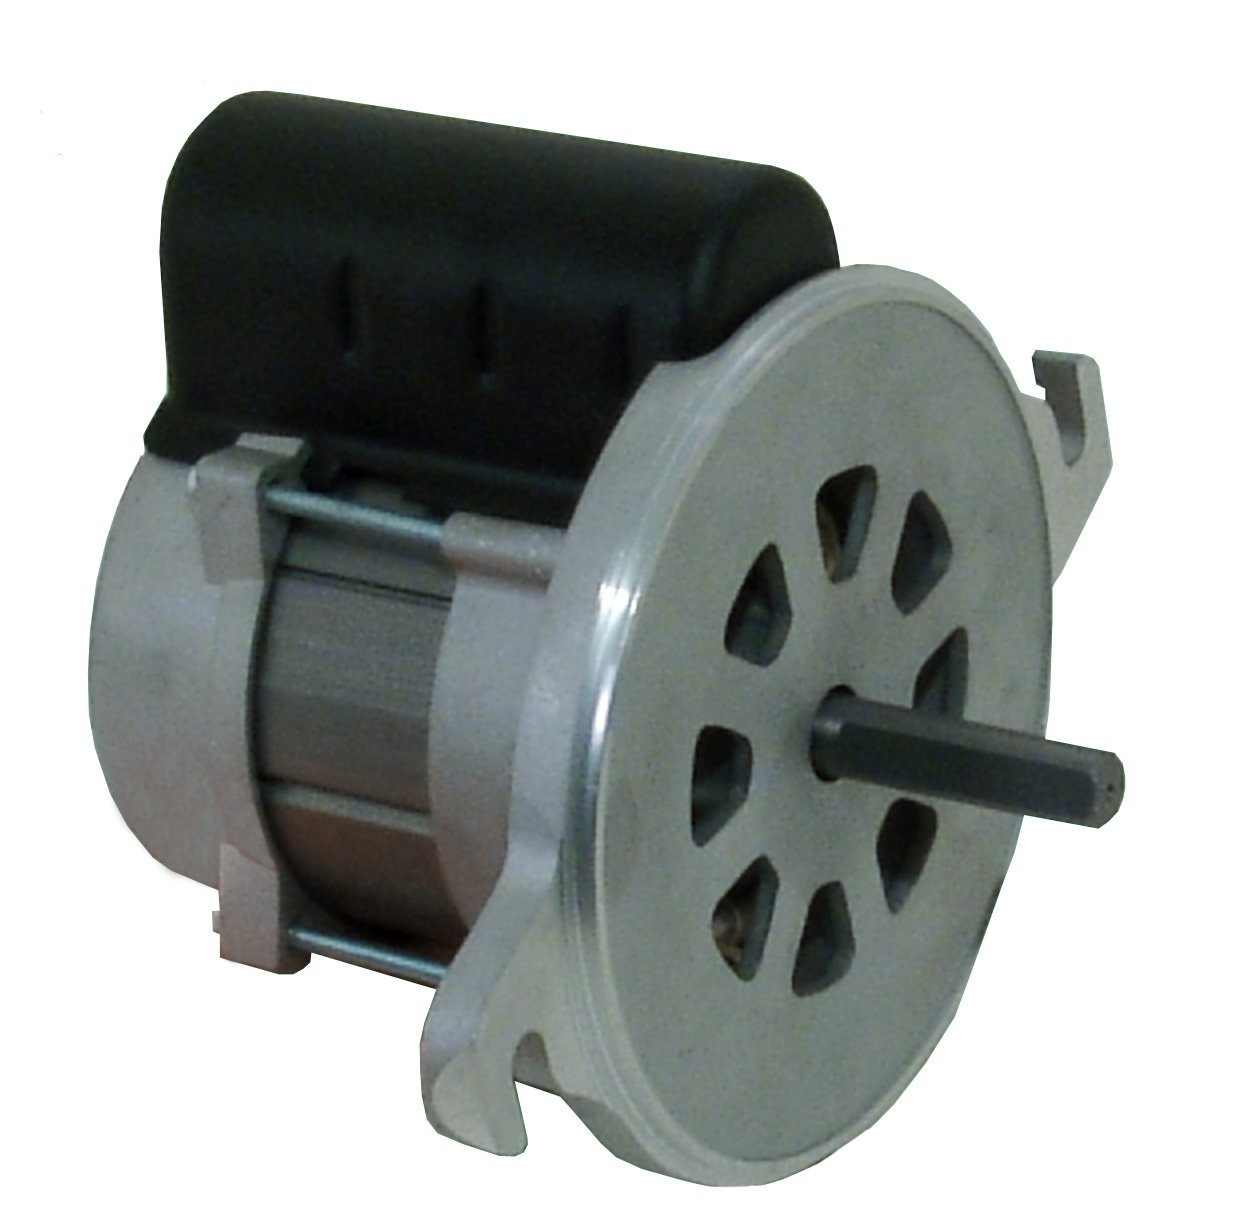 CWOSE Rotation Oil Burner Motor Smith OBK6002V1 1//7 HP Totally Enclosed 3450 RPM Ball Bearing 48M Frame 115 Volts A.O